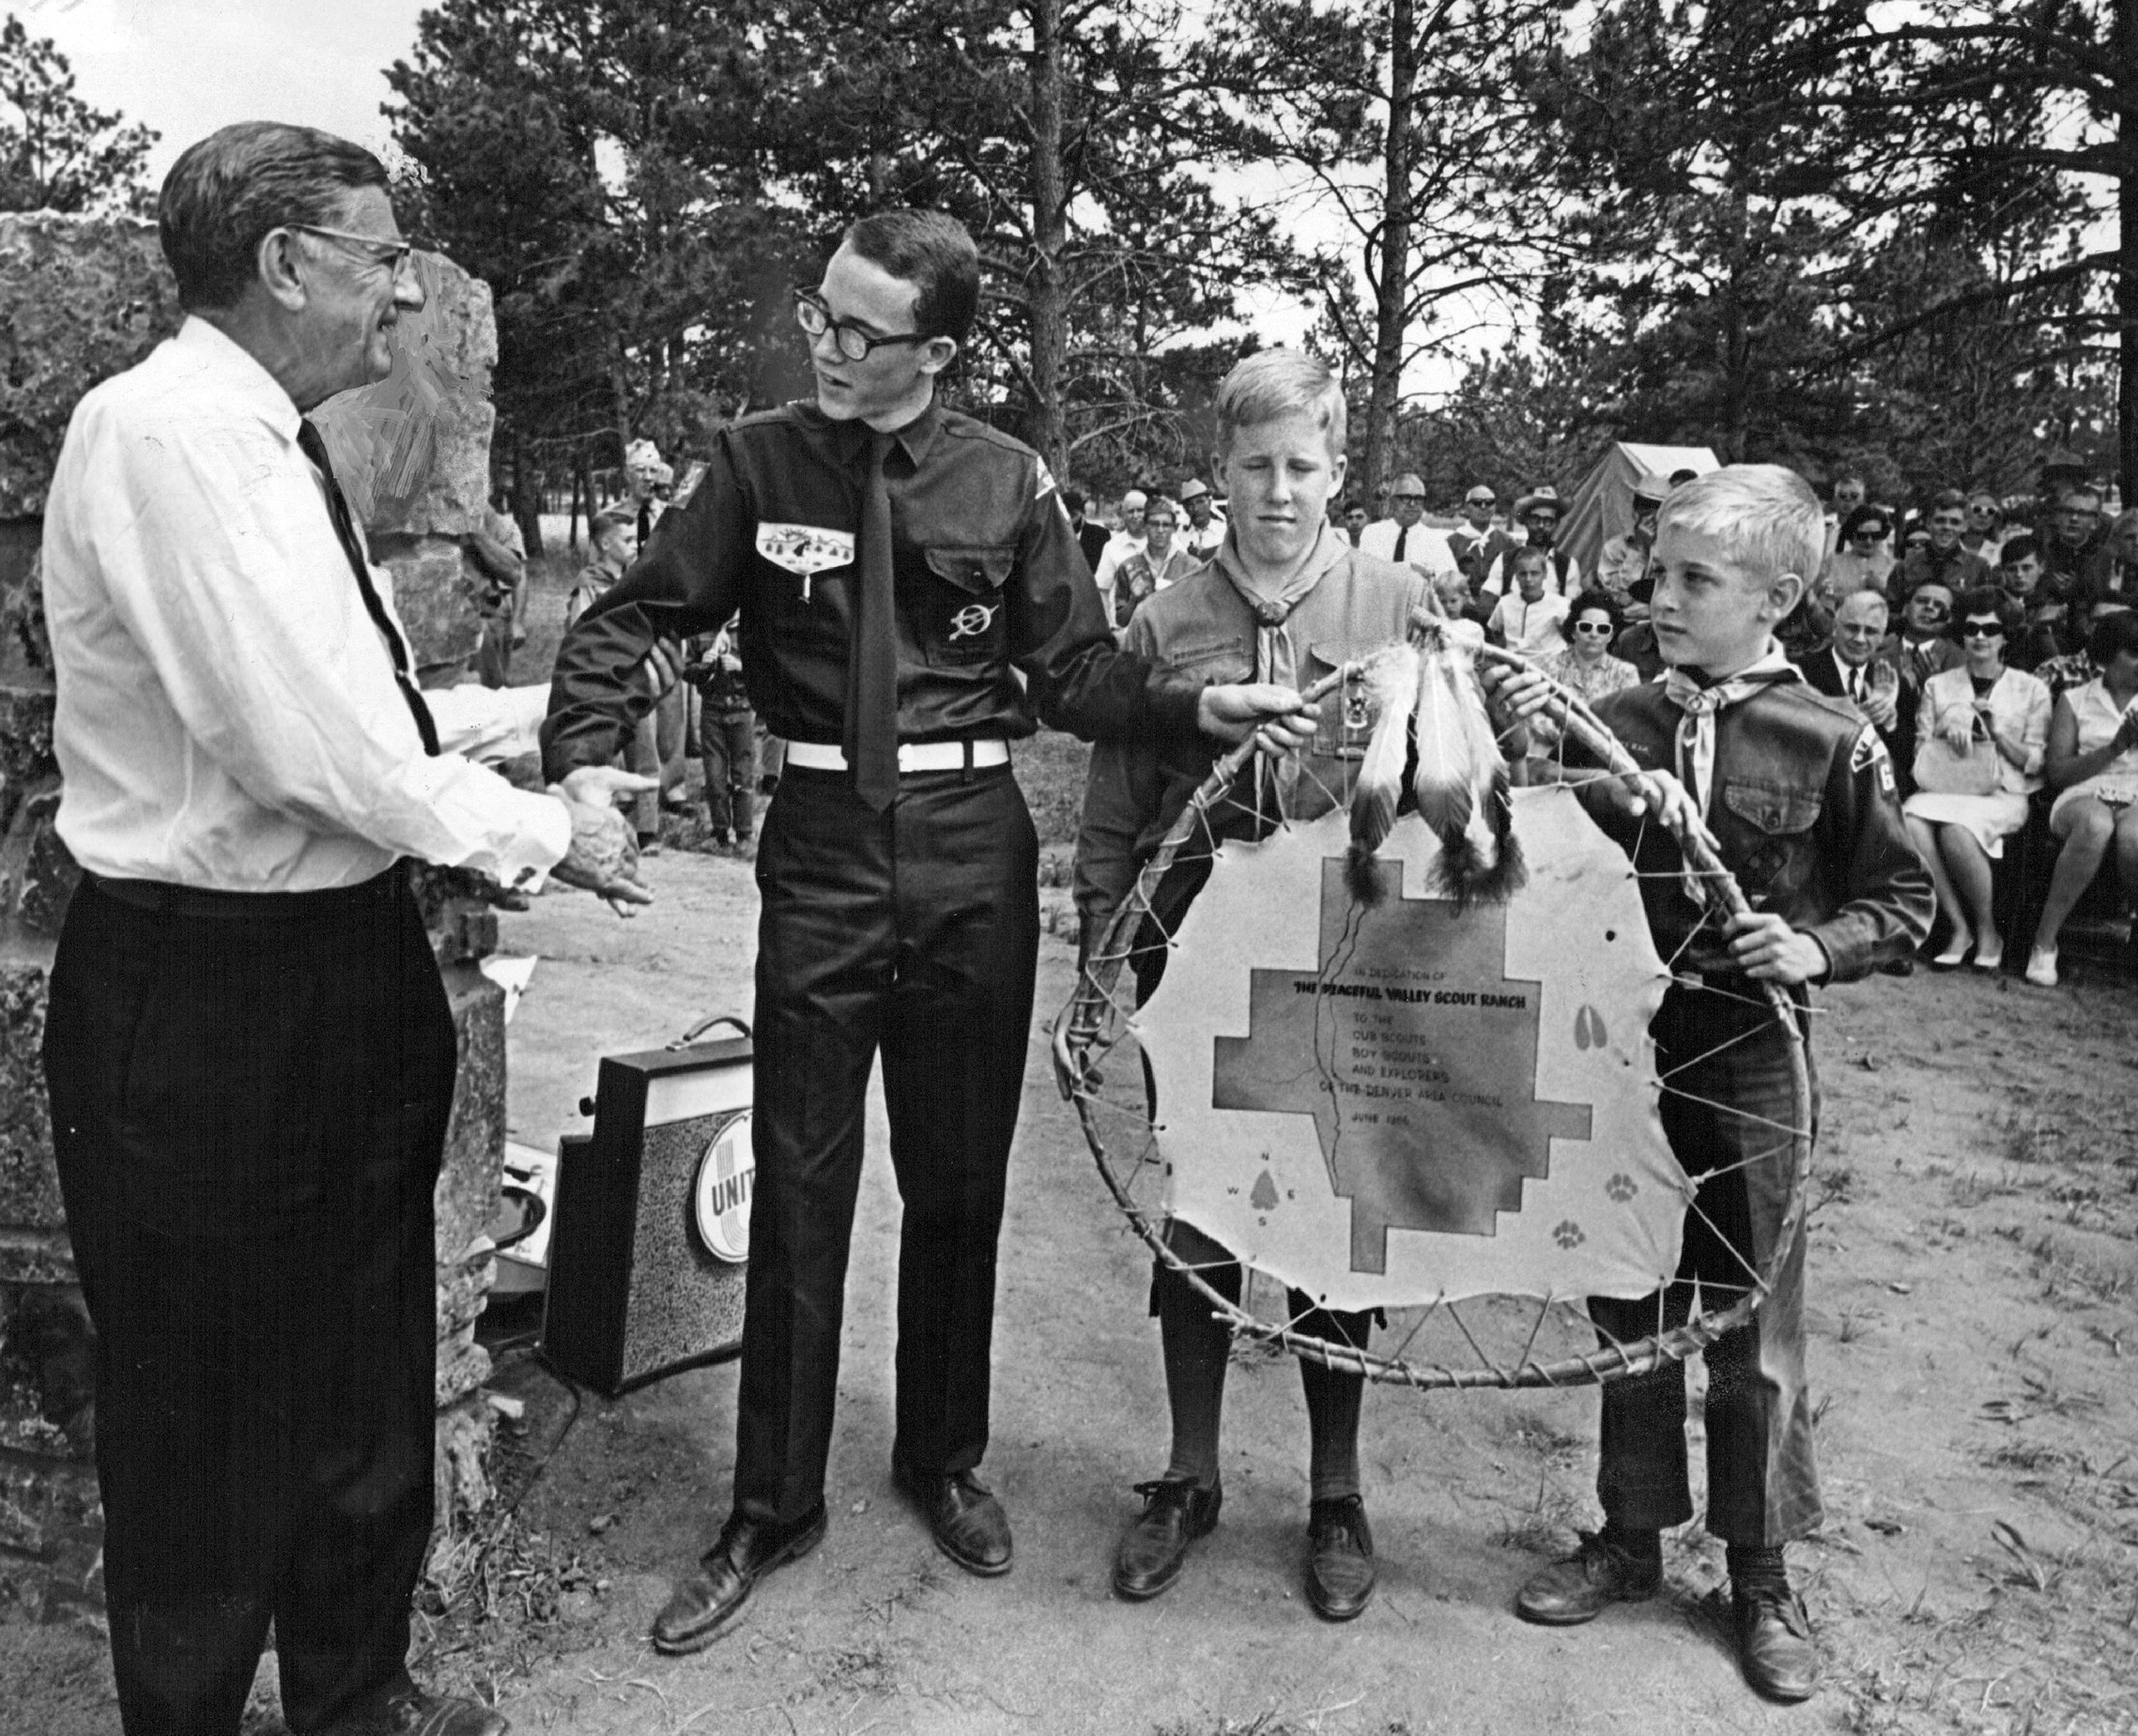 J. Clinton Bowman, president of the Denver Area Council, Boy Scouts of America, presents a leather map of the Peaceful Valley Scout Ranch to three representatives of the Scouts- from left, Keat, Phil and Roger Johnson. 1966.